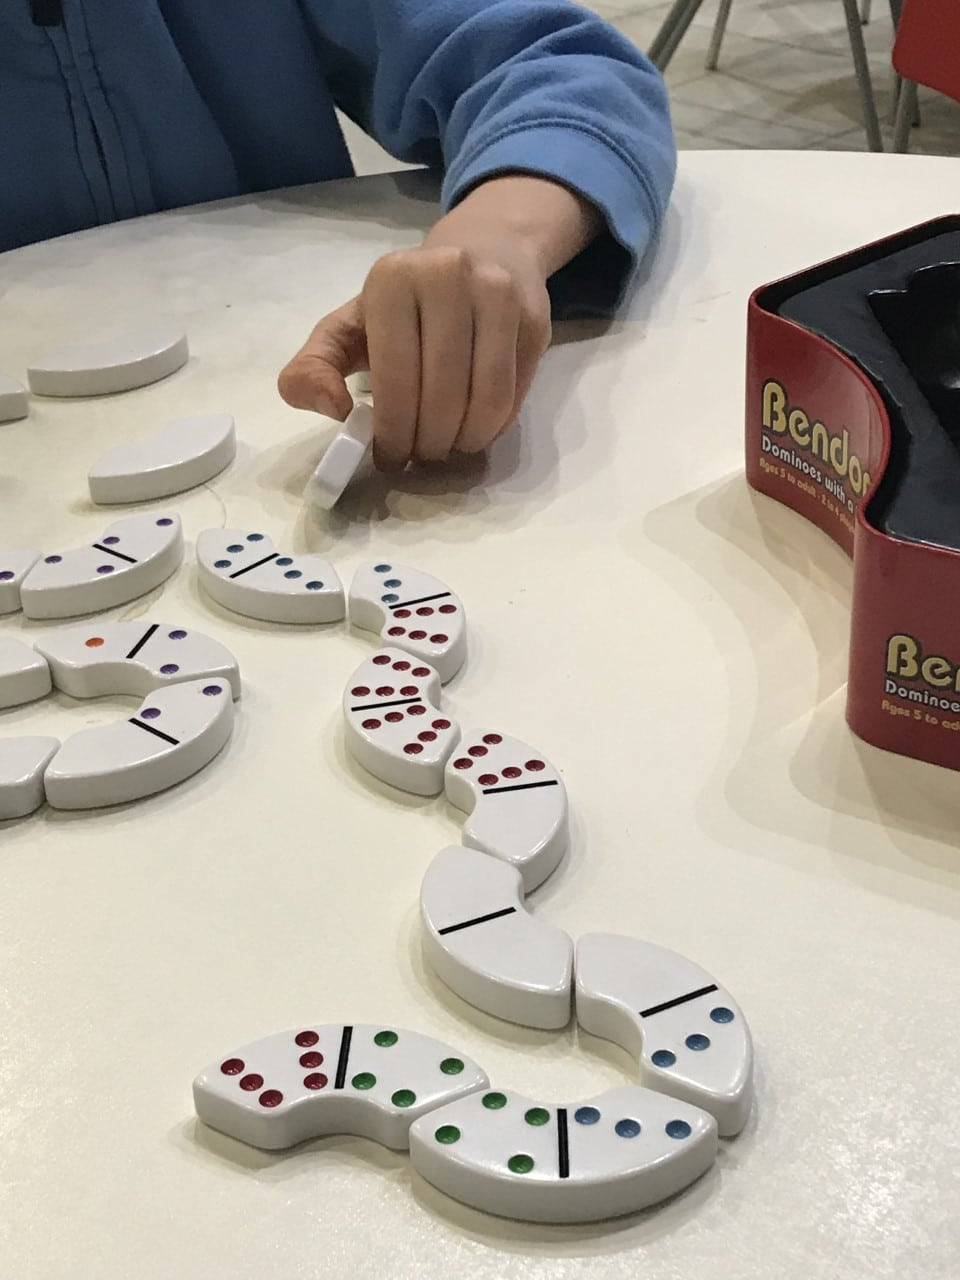 playing bendominoes